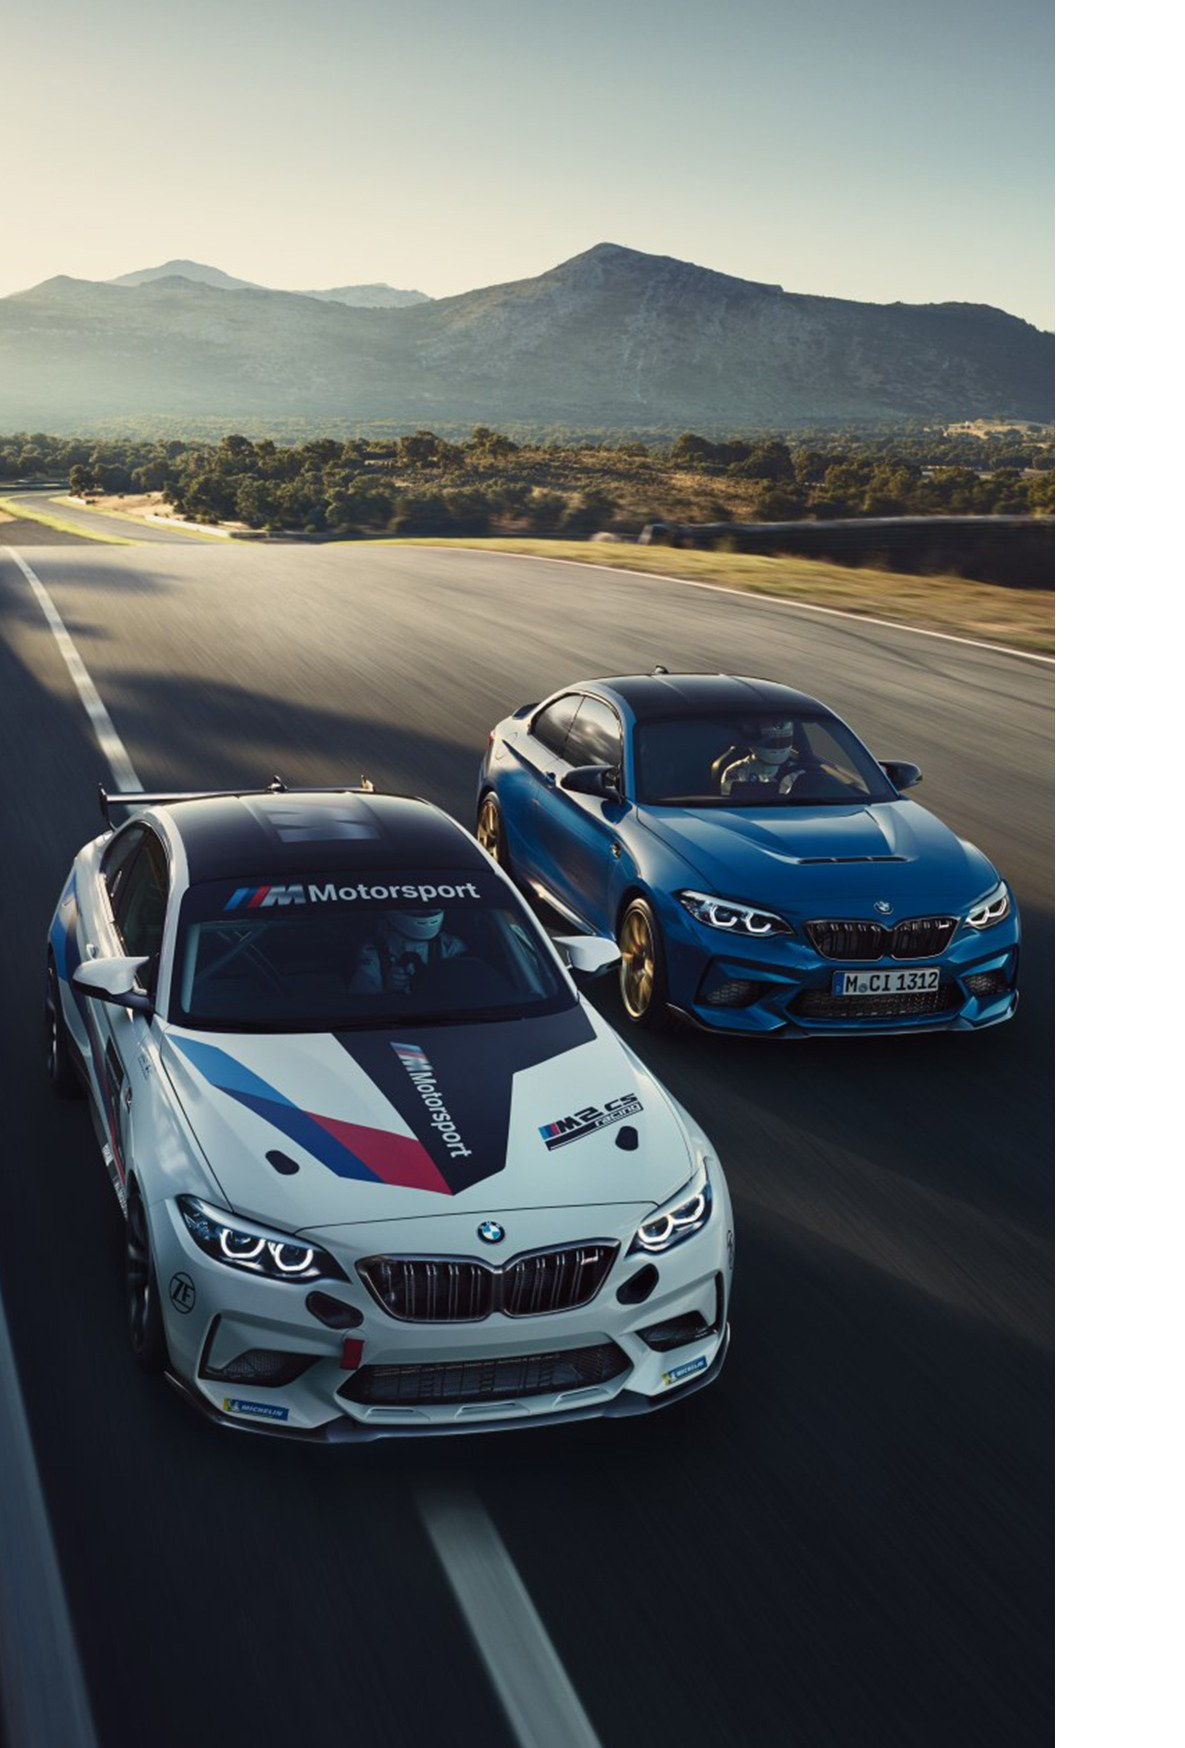 A BMW M2 CS Racing and a blue M2 CS driving together on a race track